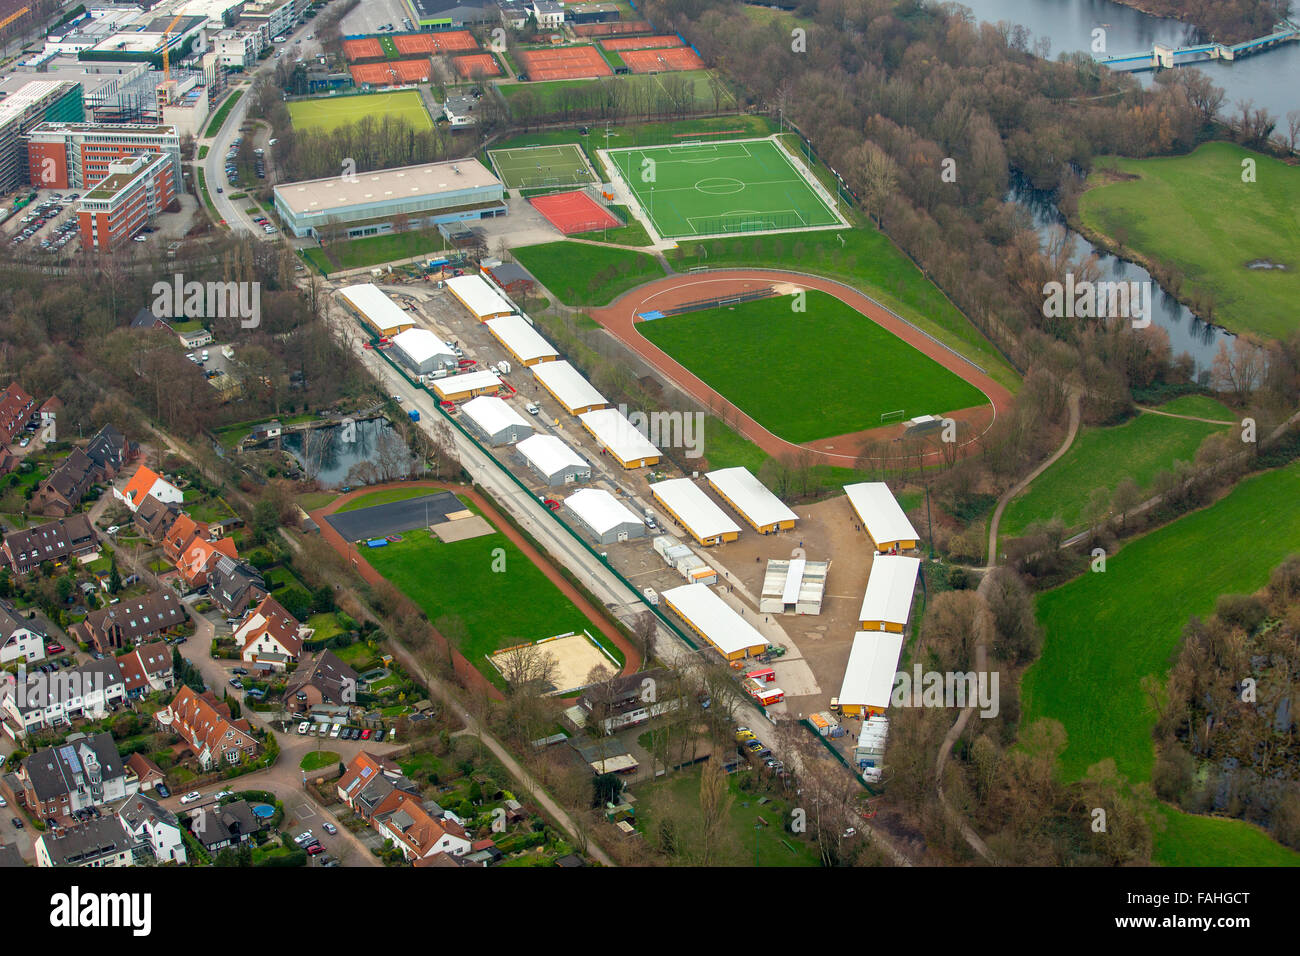 Recopilación de estudios sobre estatura media en Europa - Página 10 Aerial-view-refugee-shelters-refugee-crisis-refugee-houses-on-the-FAHGCT